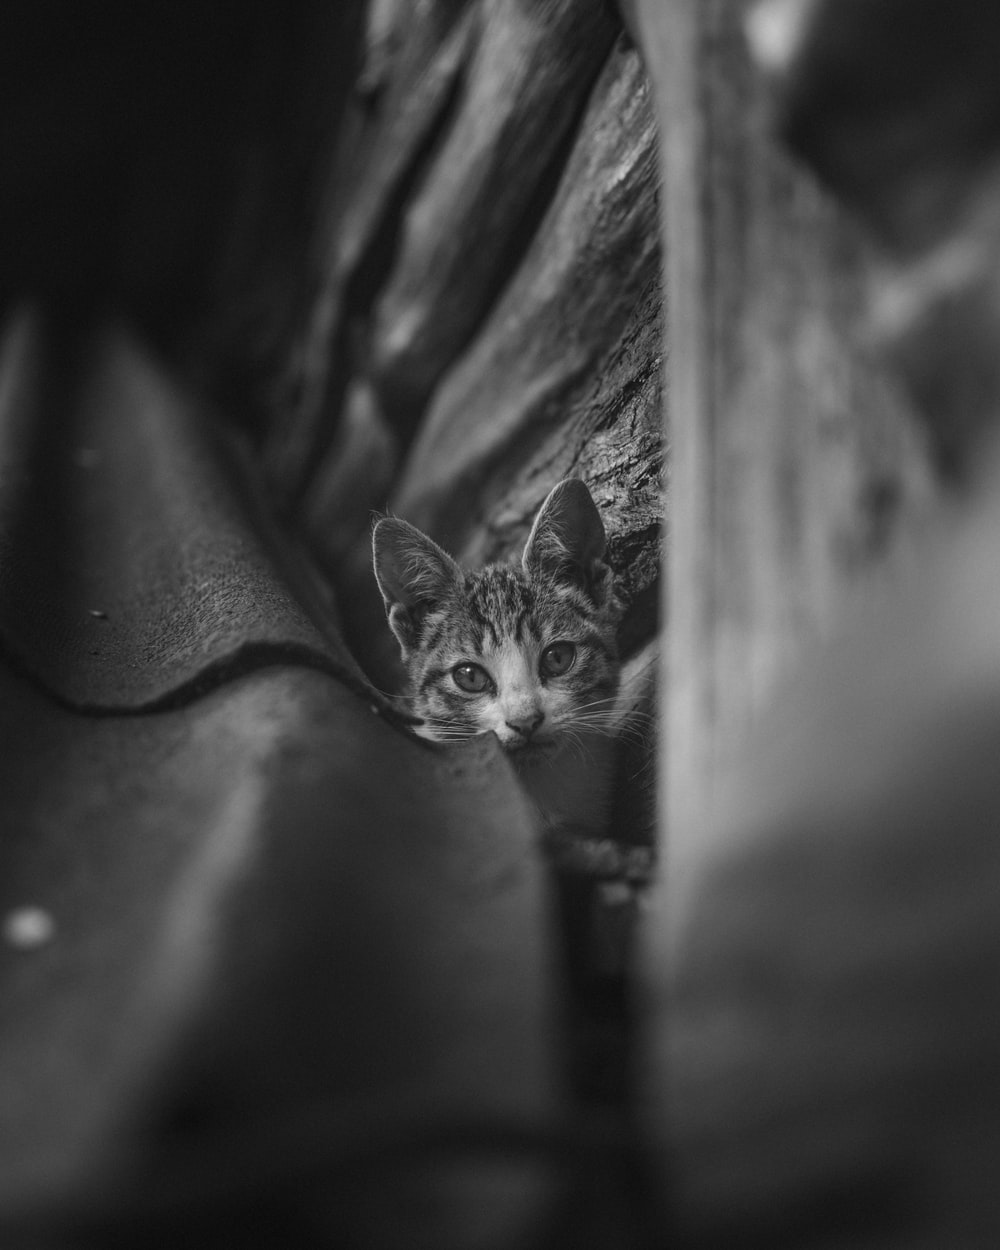 grayscale photo of tabby cat